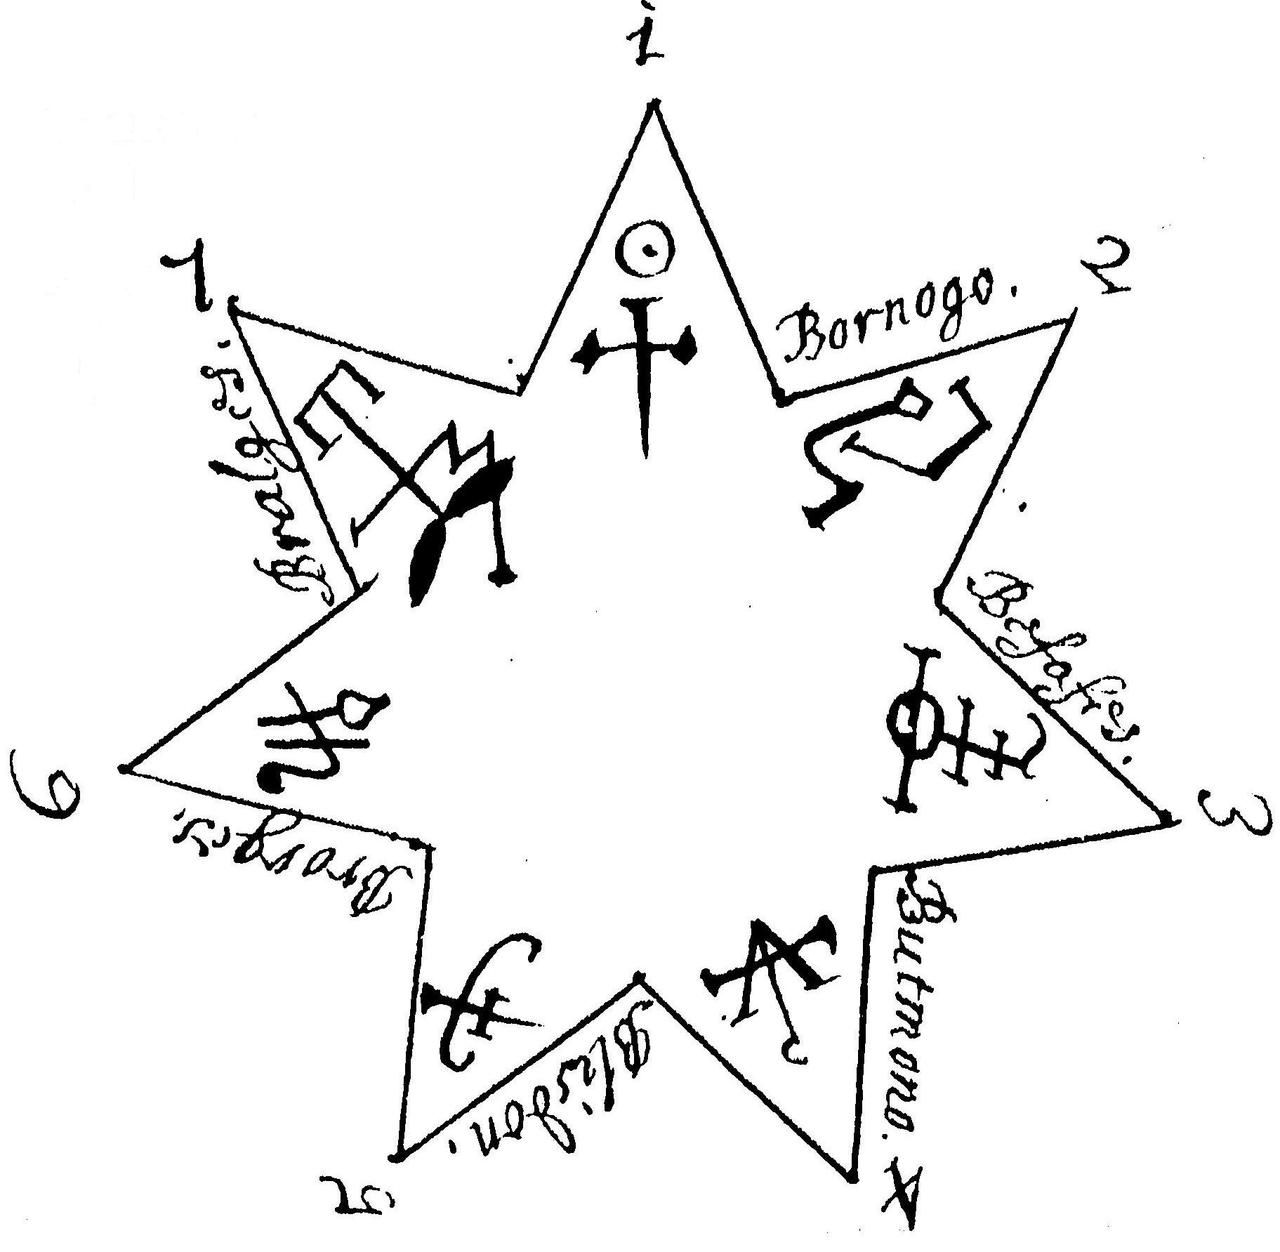 Tagaoth  Diagram With The Enochian Princes And Their